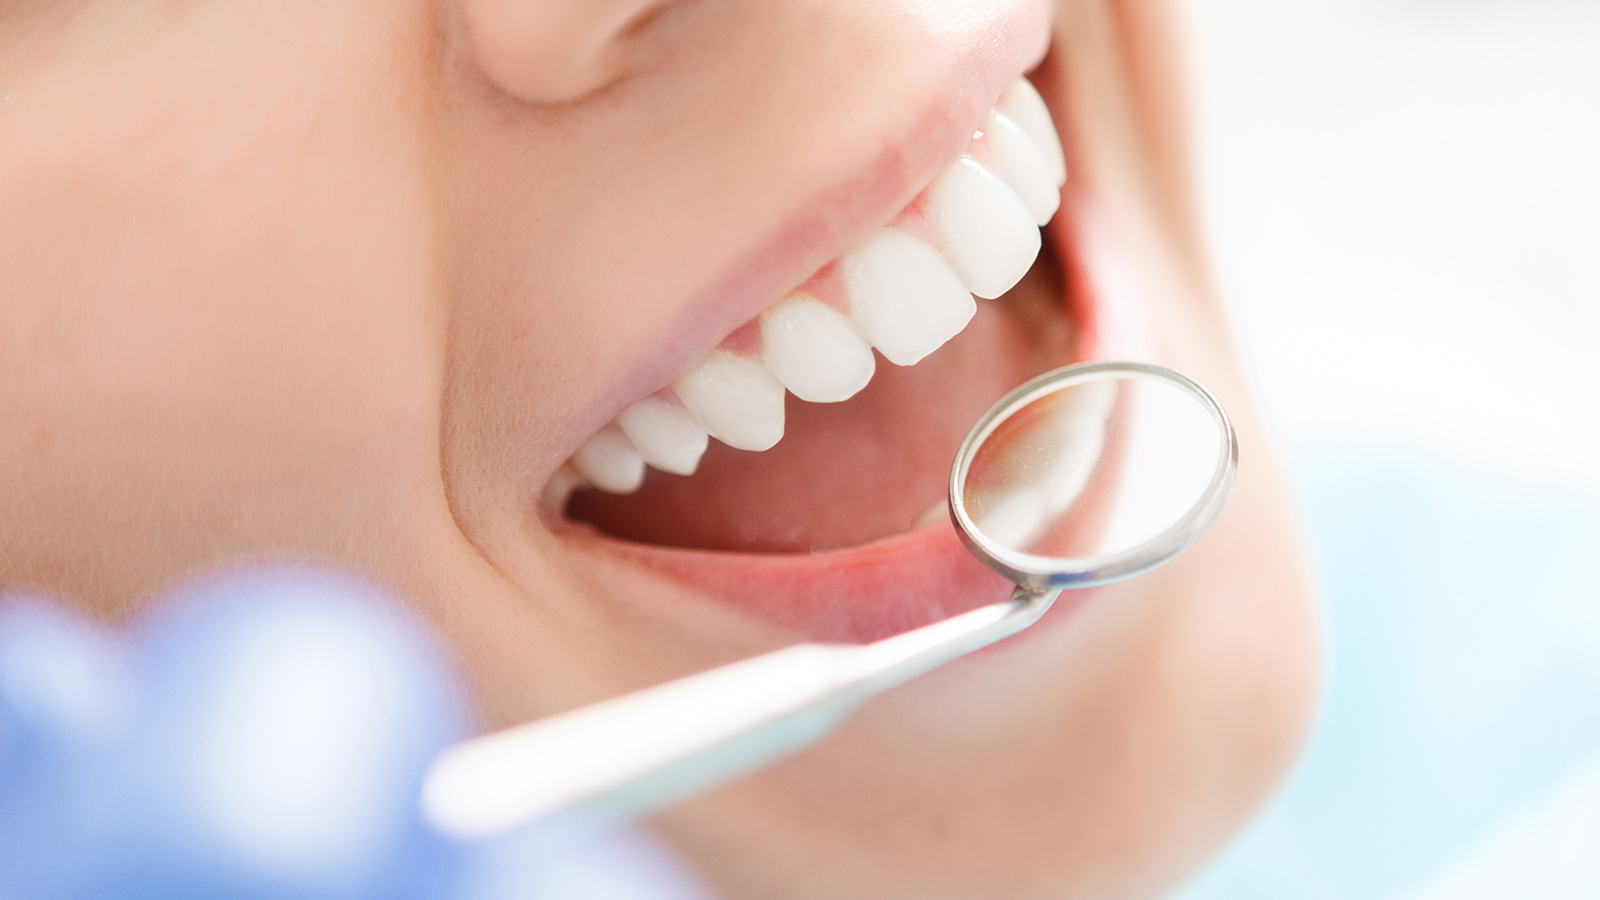 Where to Get Dentures and Zoom Whitening in Auckland CBD To Do?